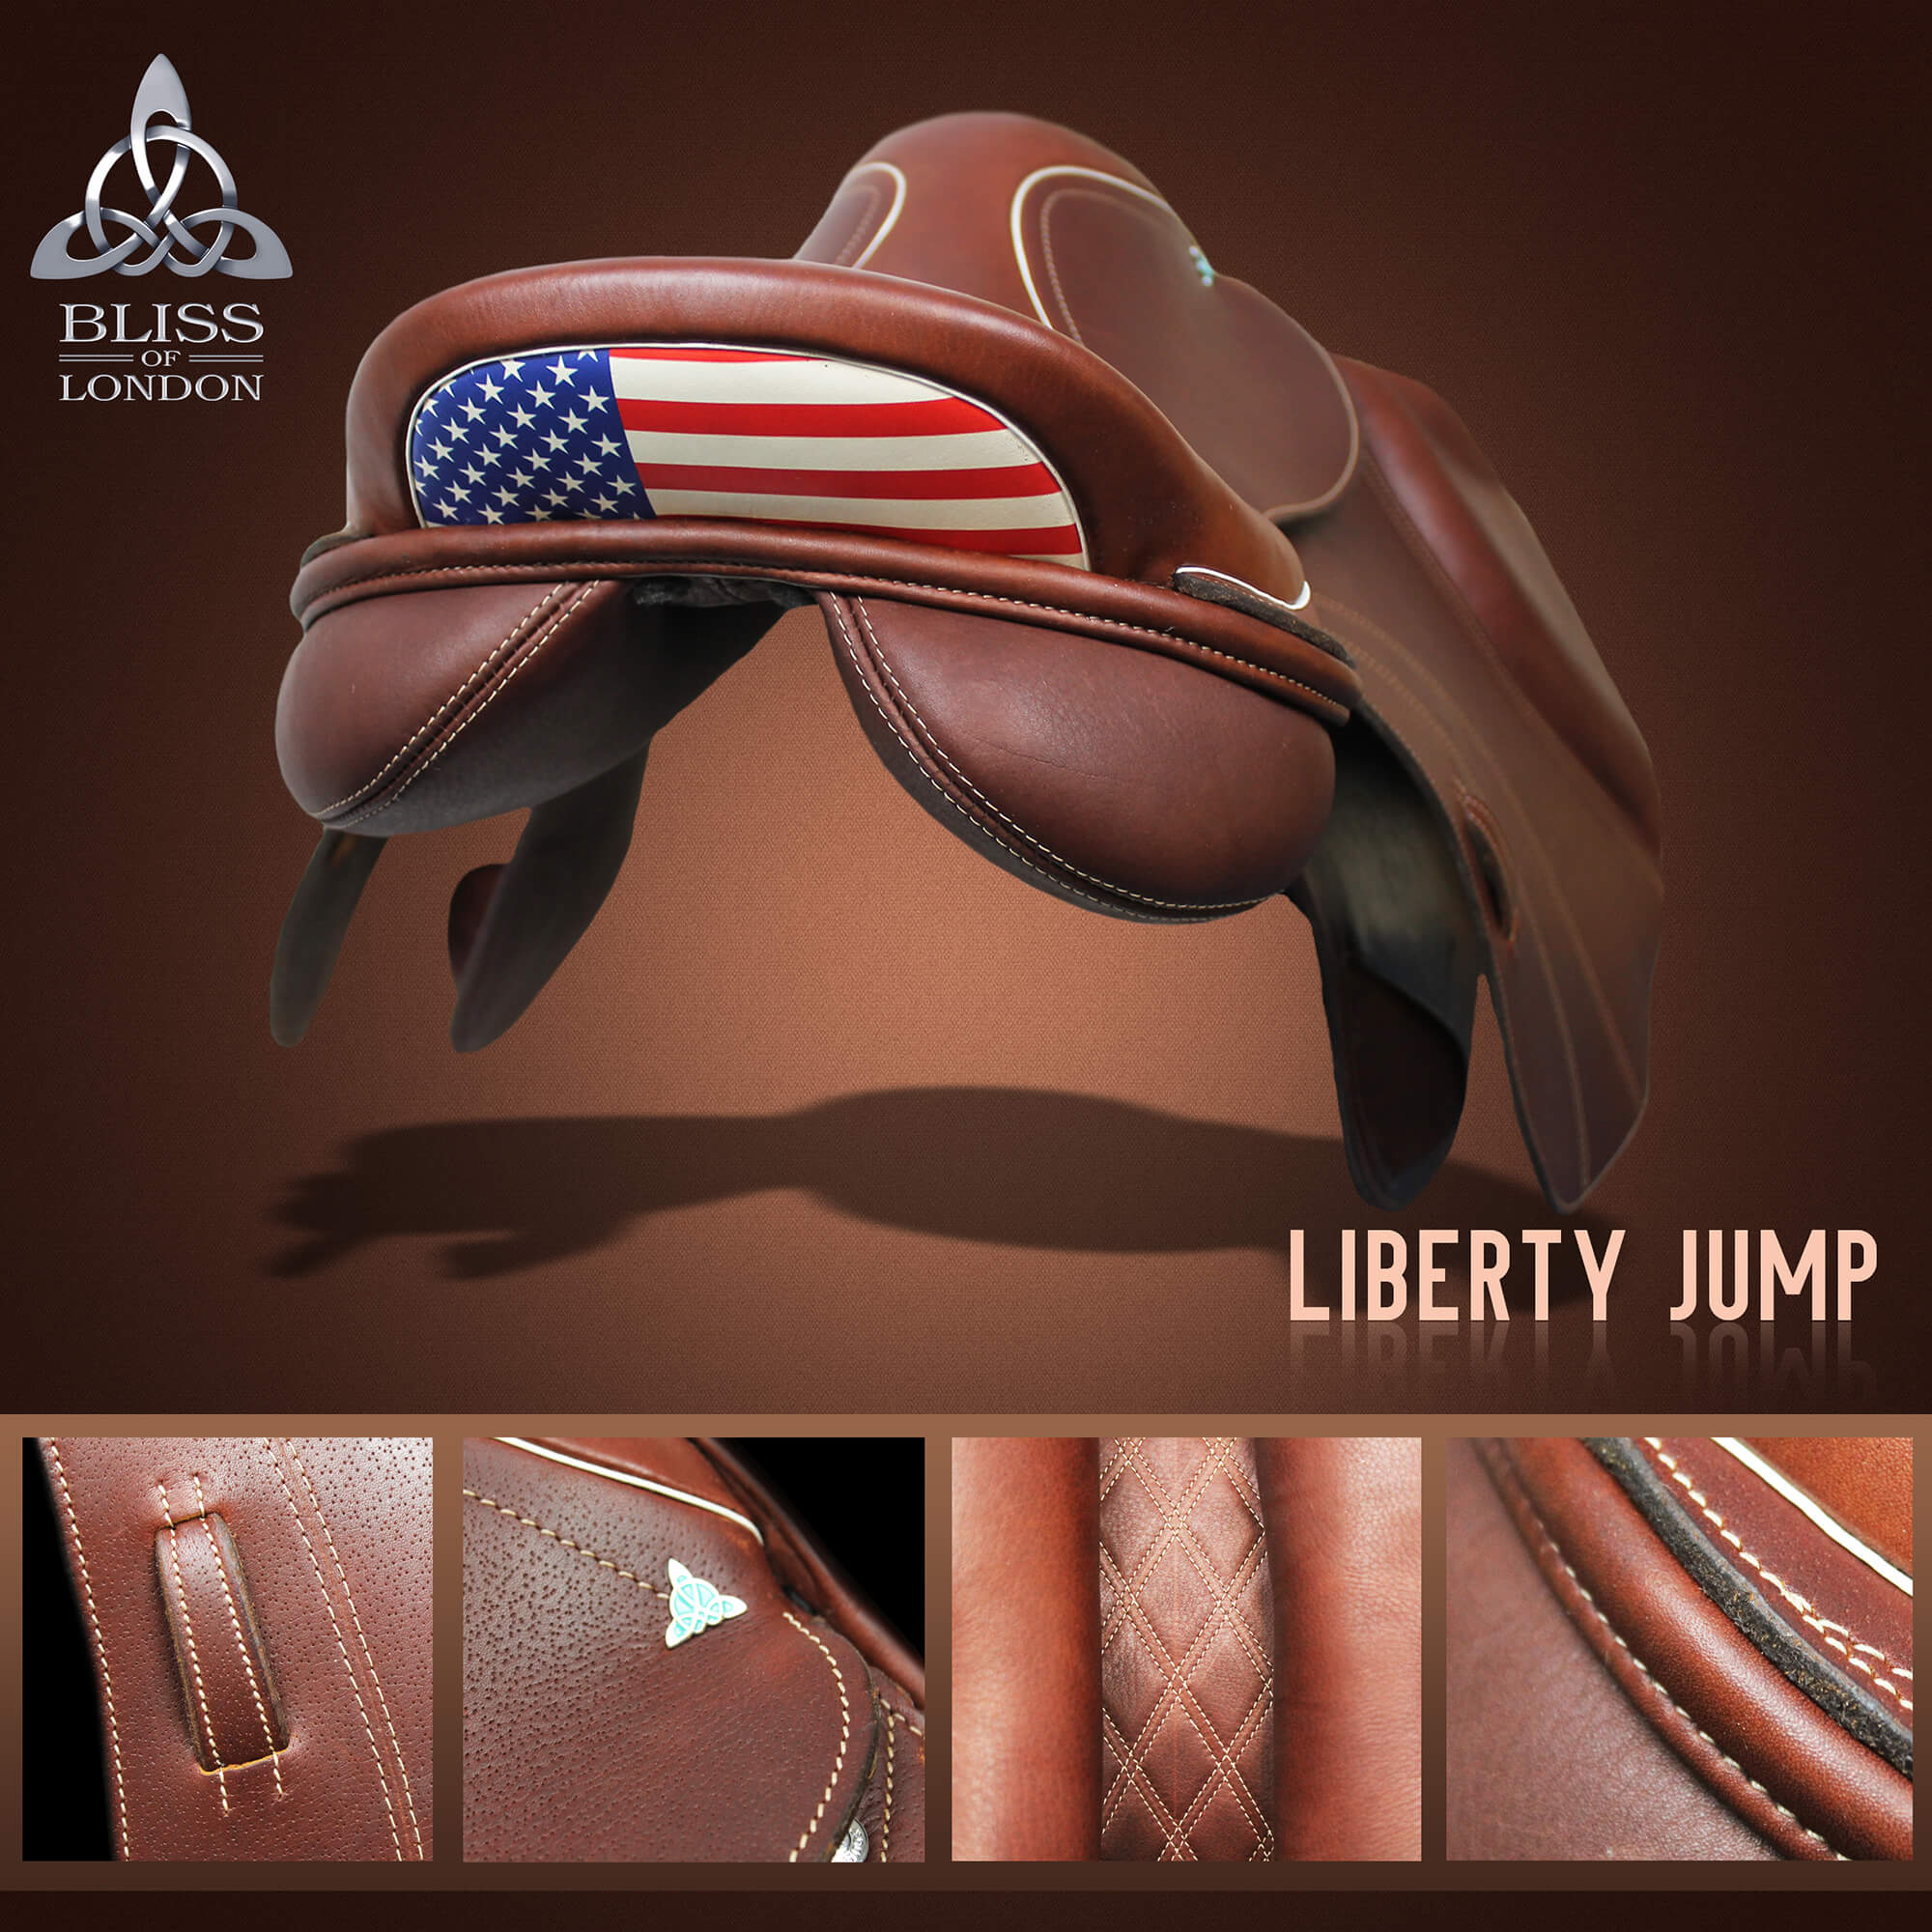 4 Bliss Liberty Jump claret USA